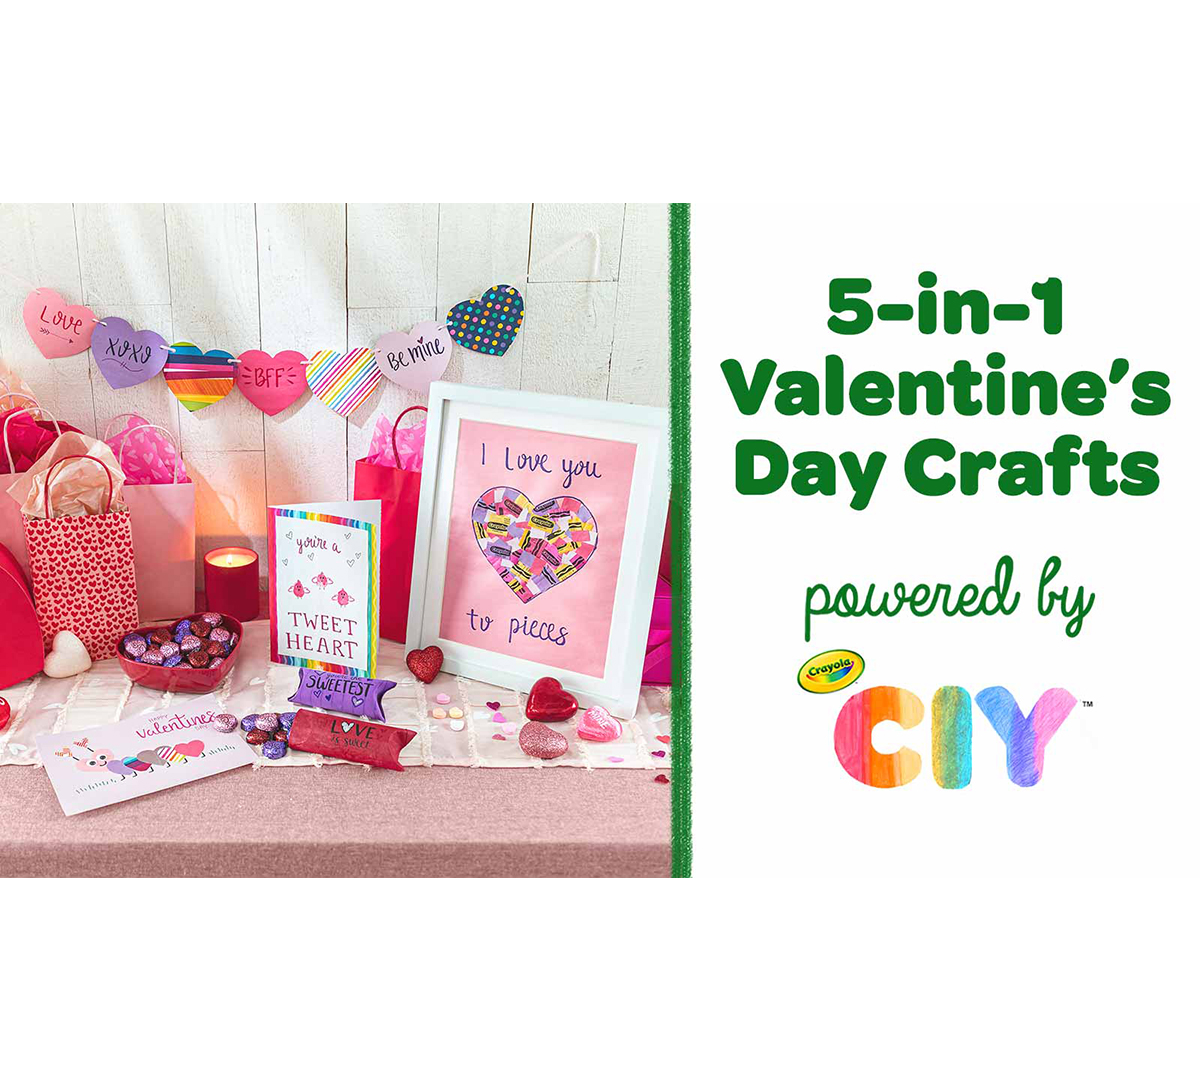 Valentine's Day 5-in-1 Craft Kit Components